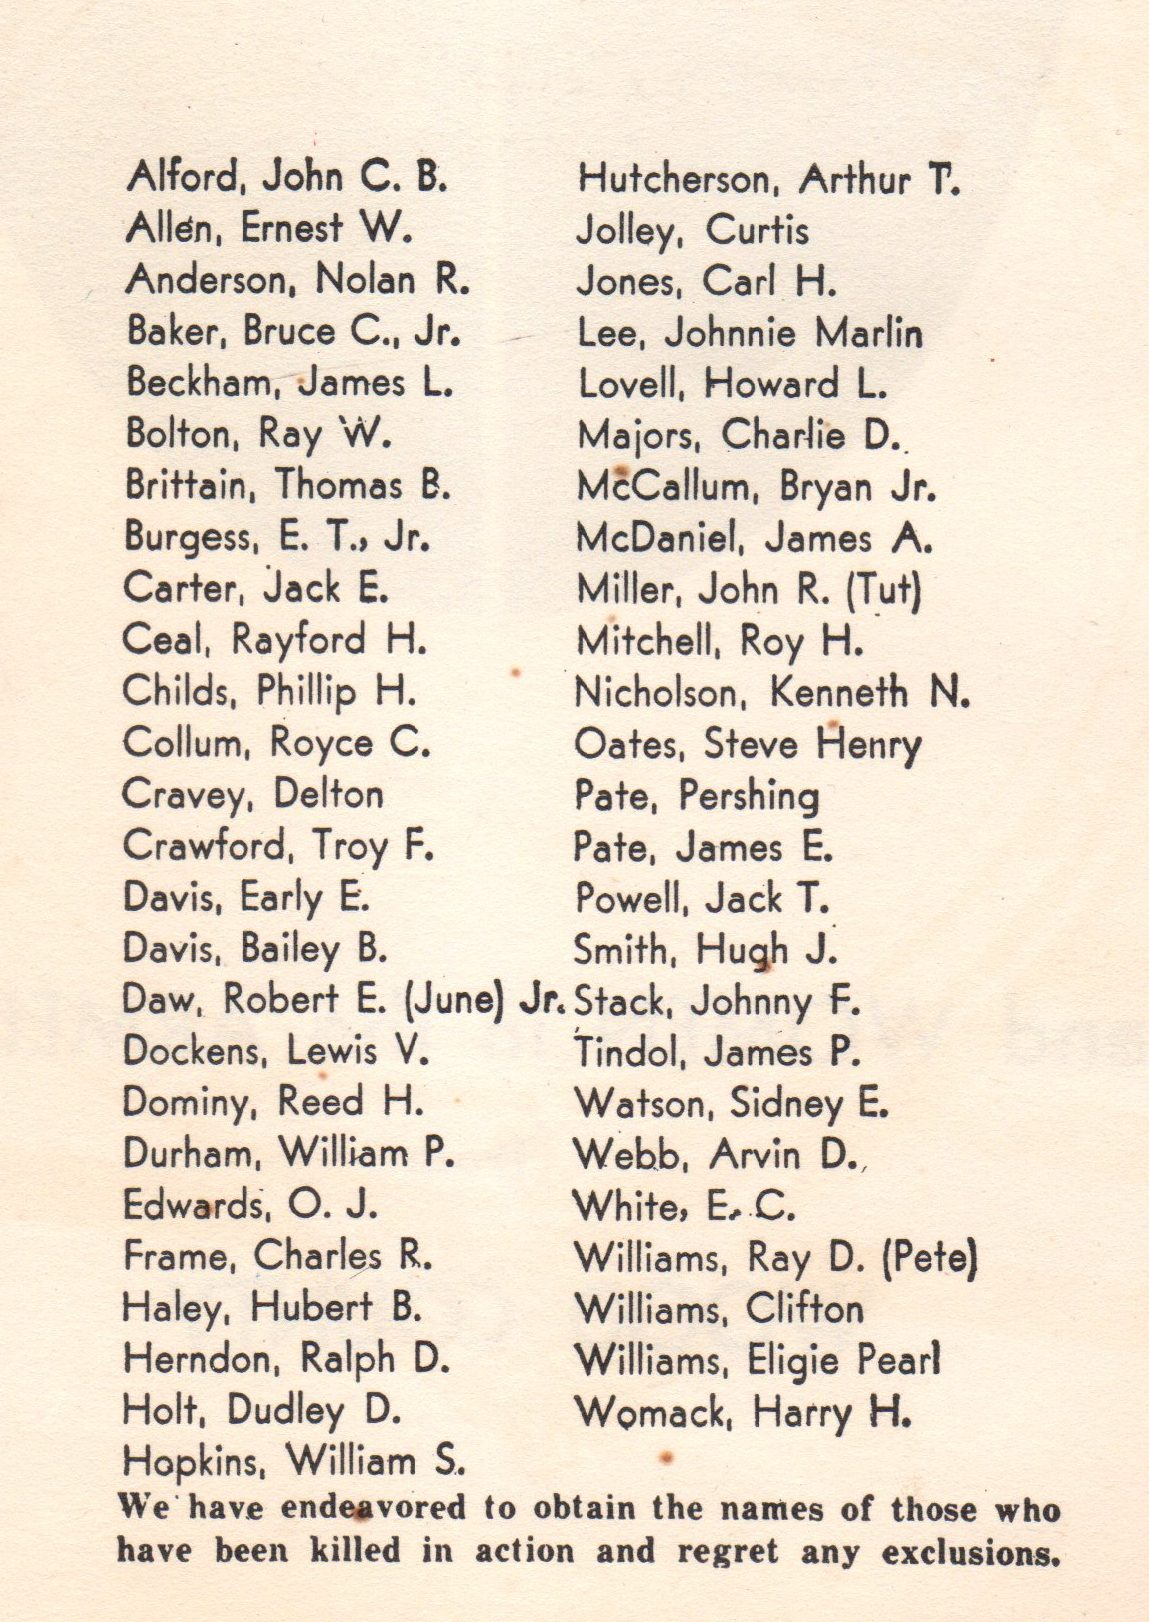 Men and women in the Armed Forces from Woods County Texas Killed in Action